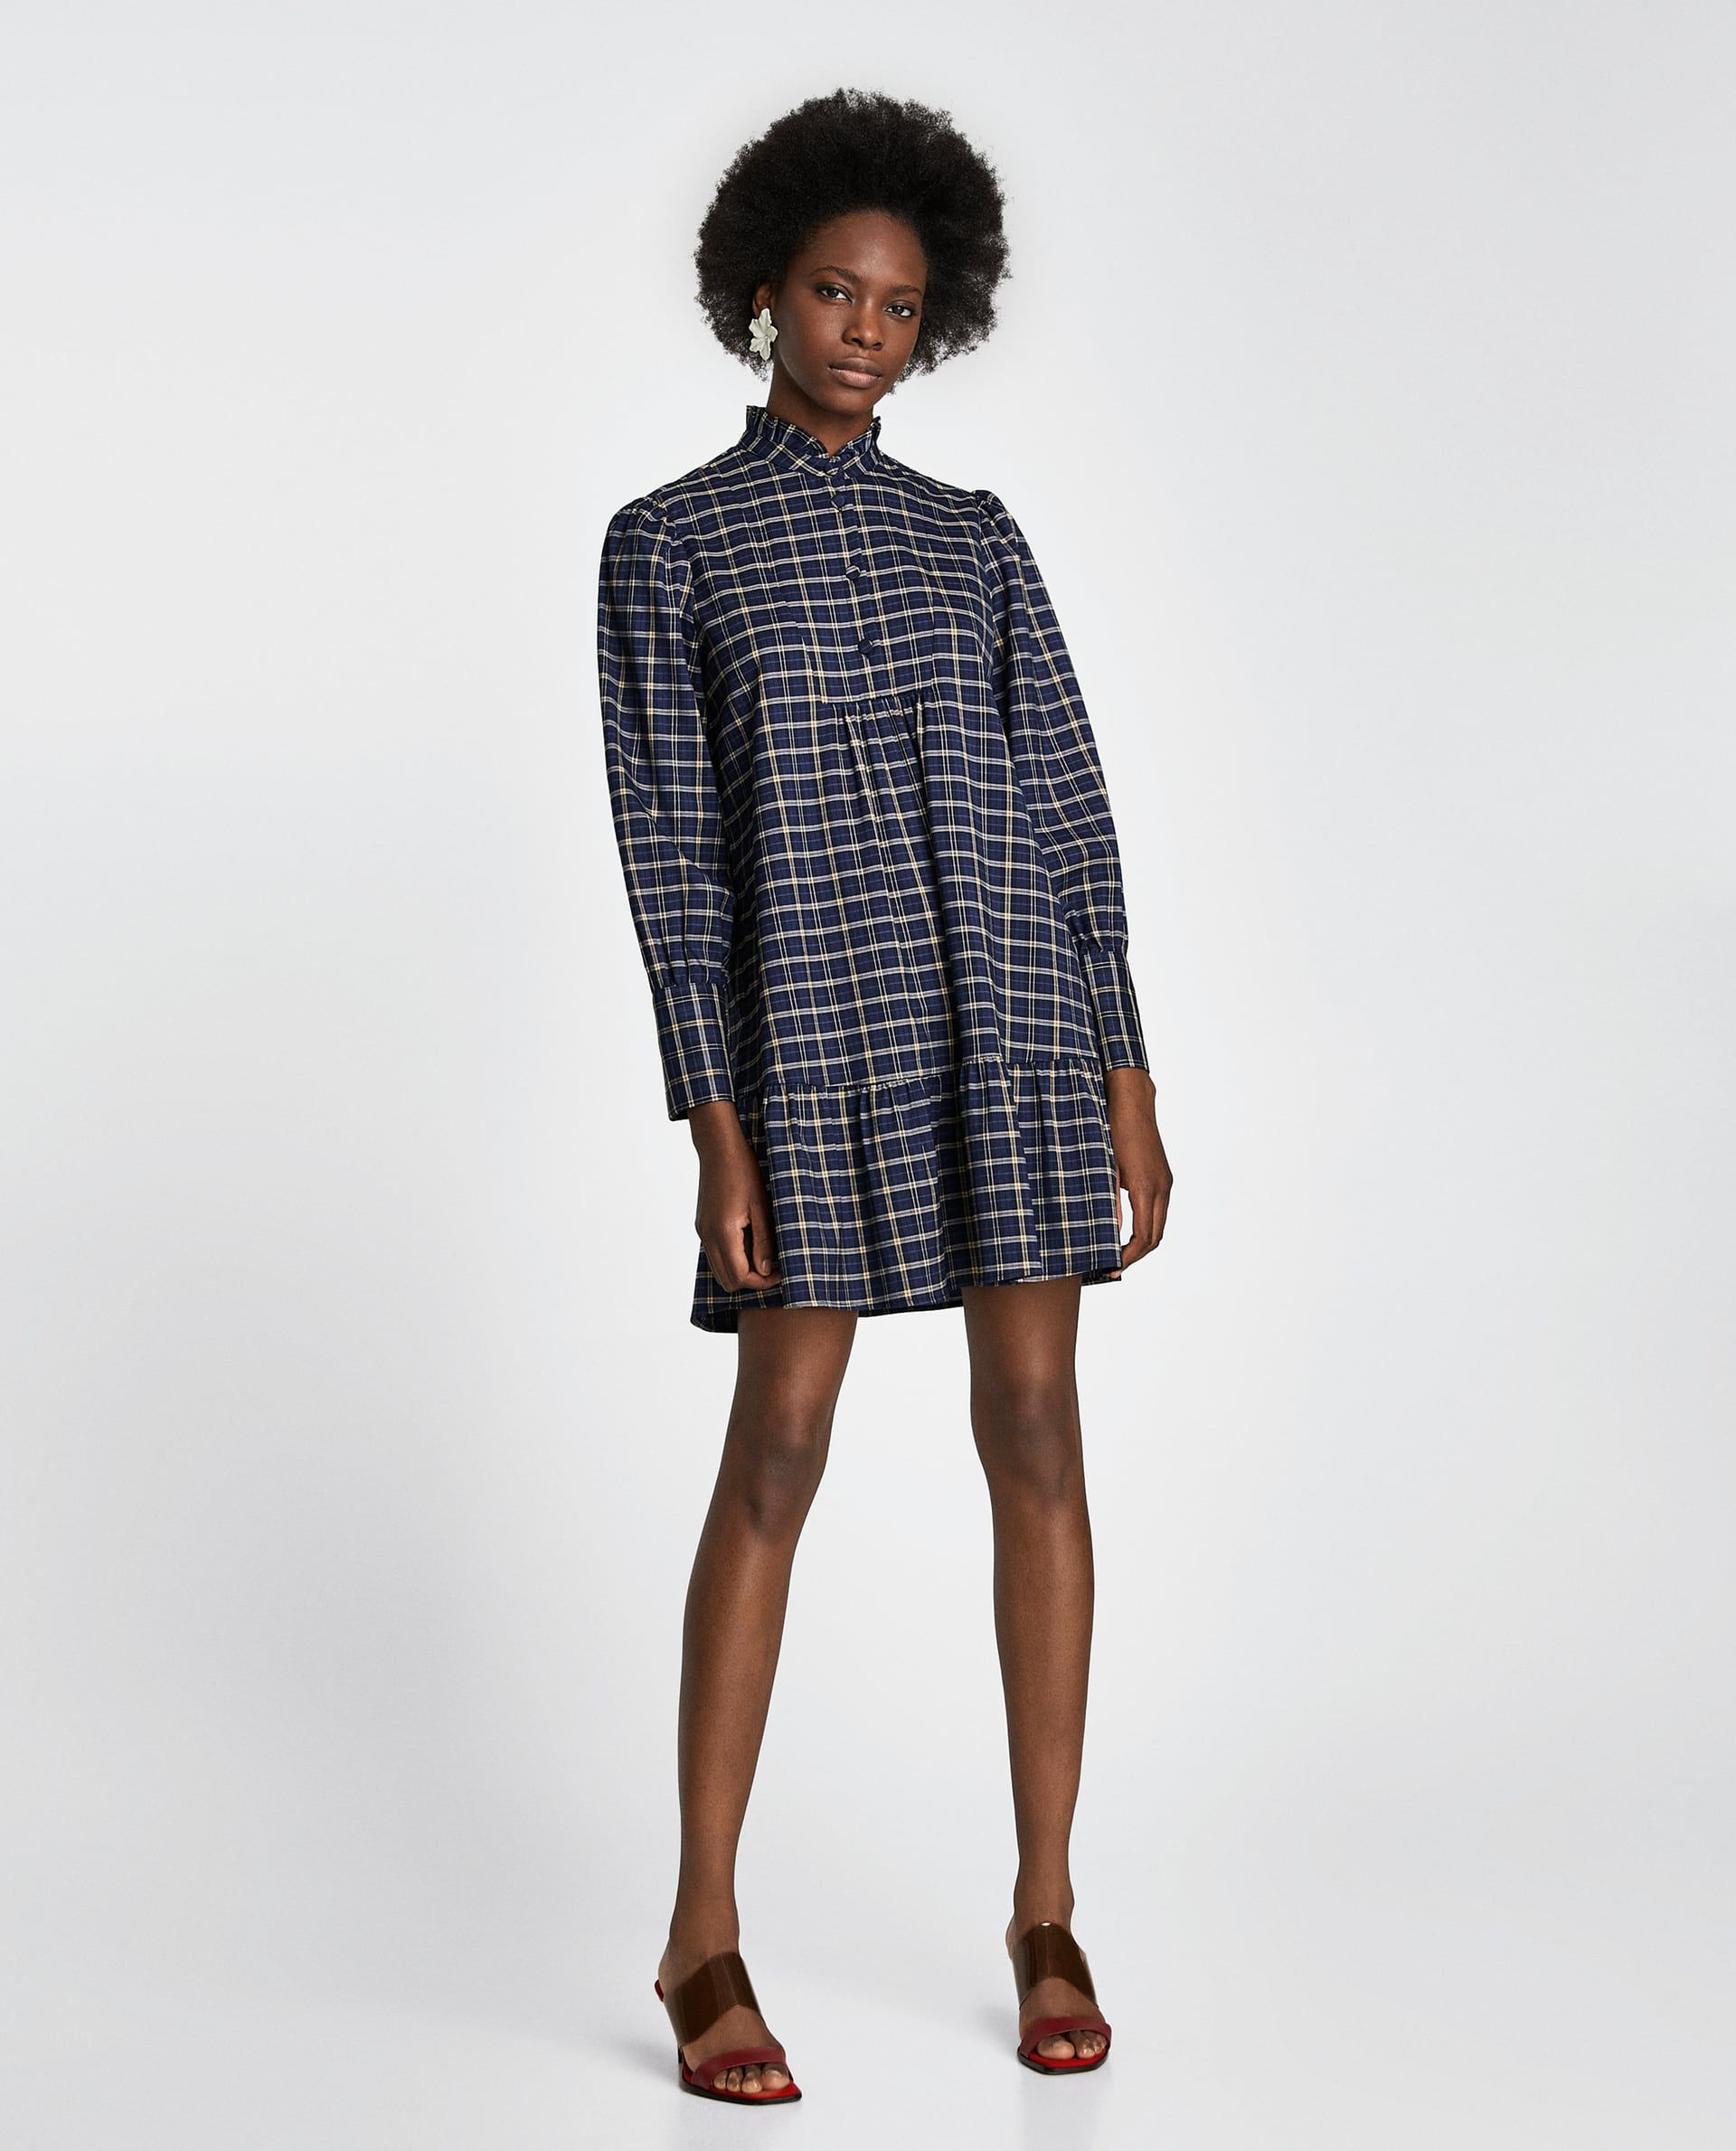 Zara Dan 1 Kareli Gomlek Elbise Resmi Zara Outfit Shirt Dress Checked Shirt Dress